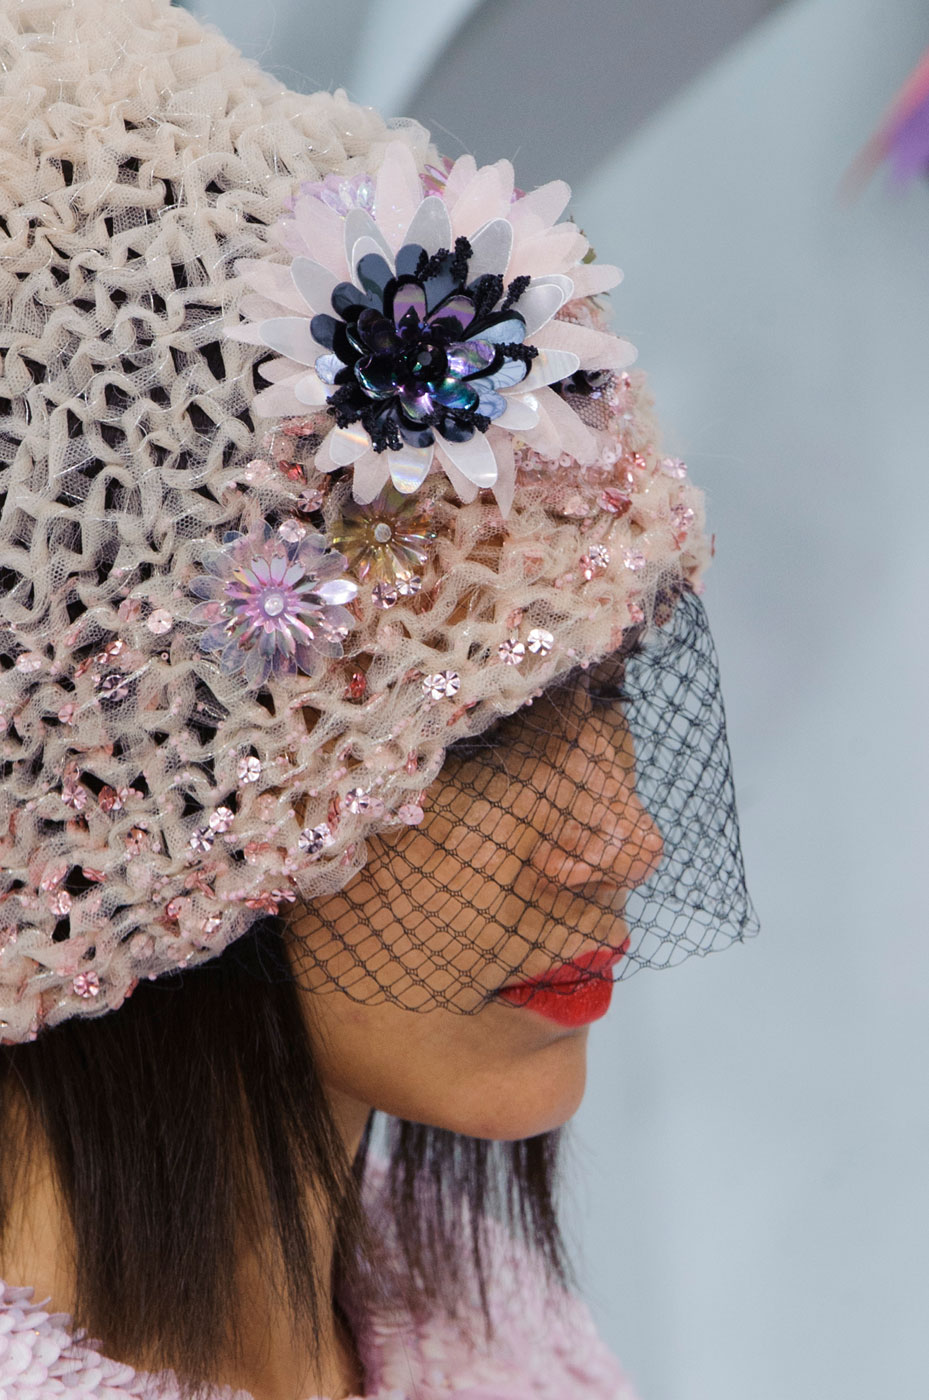 Chanel-fashion-runway-show-close-ups-haute-couture-paris-spring-summer-2015-the-impression-115